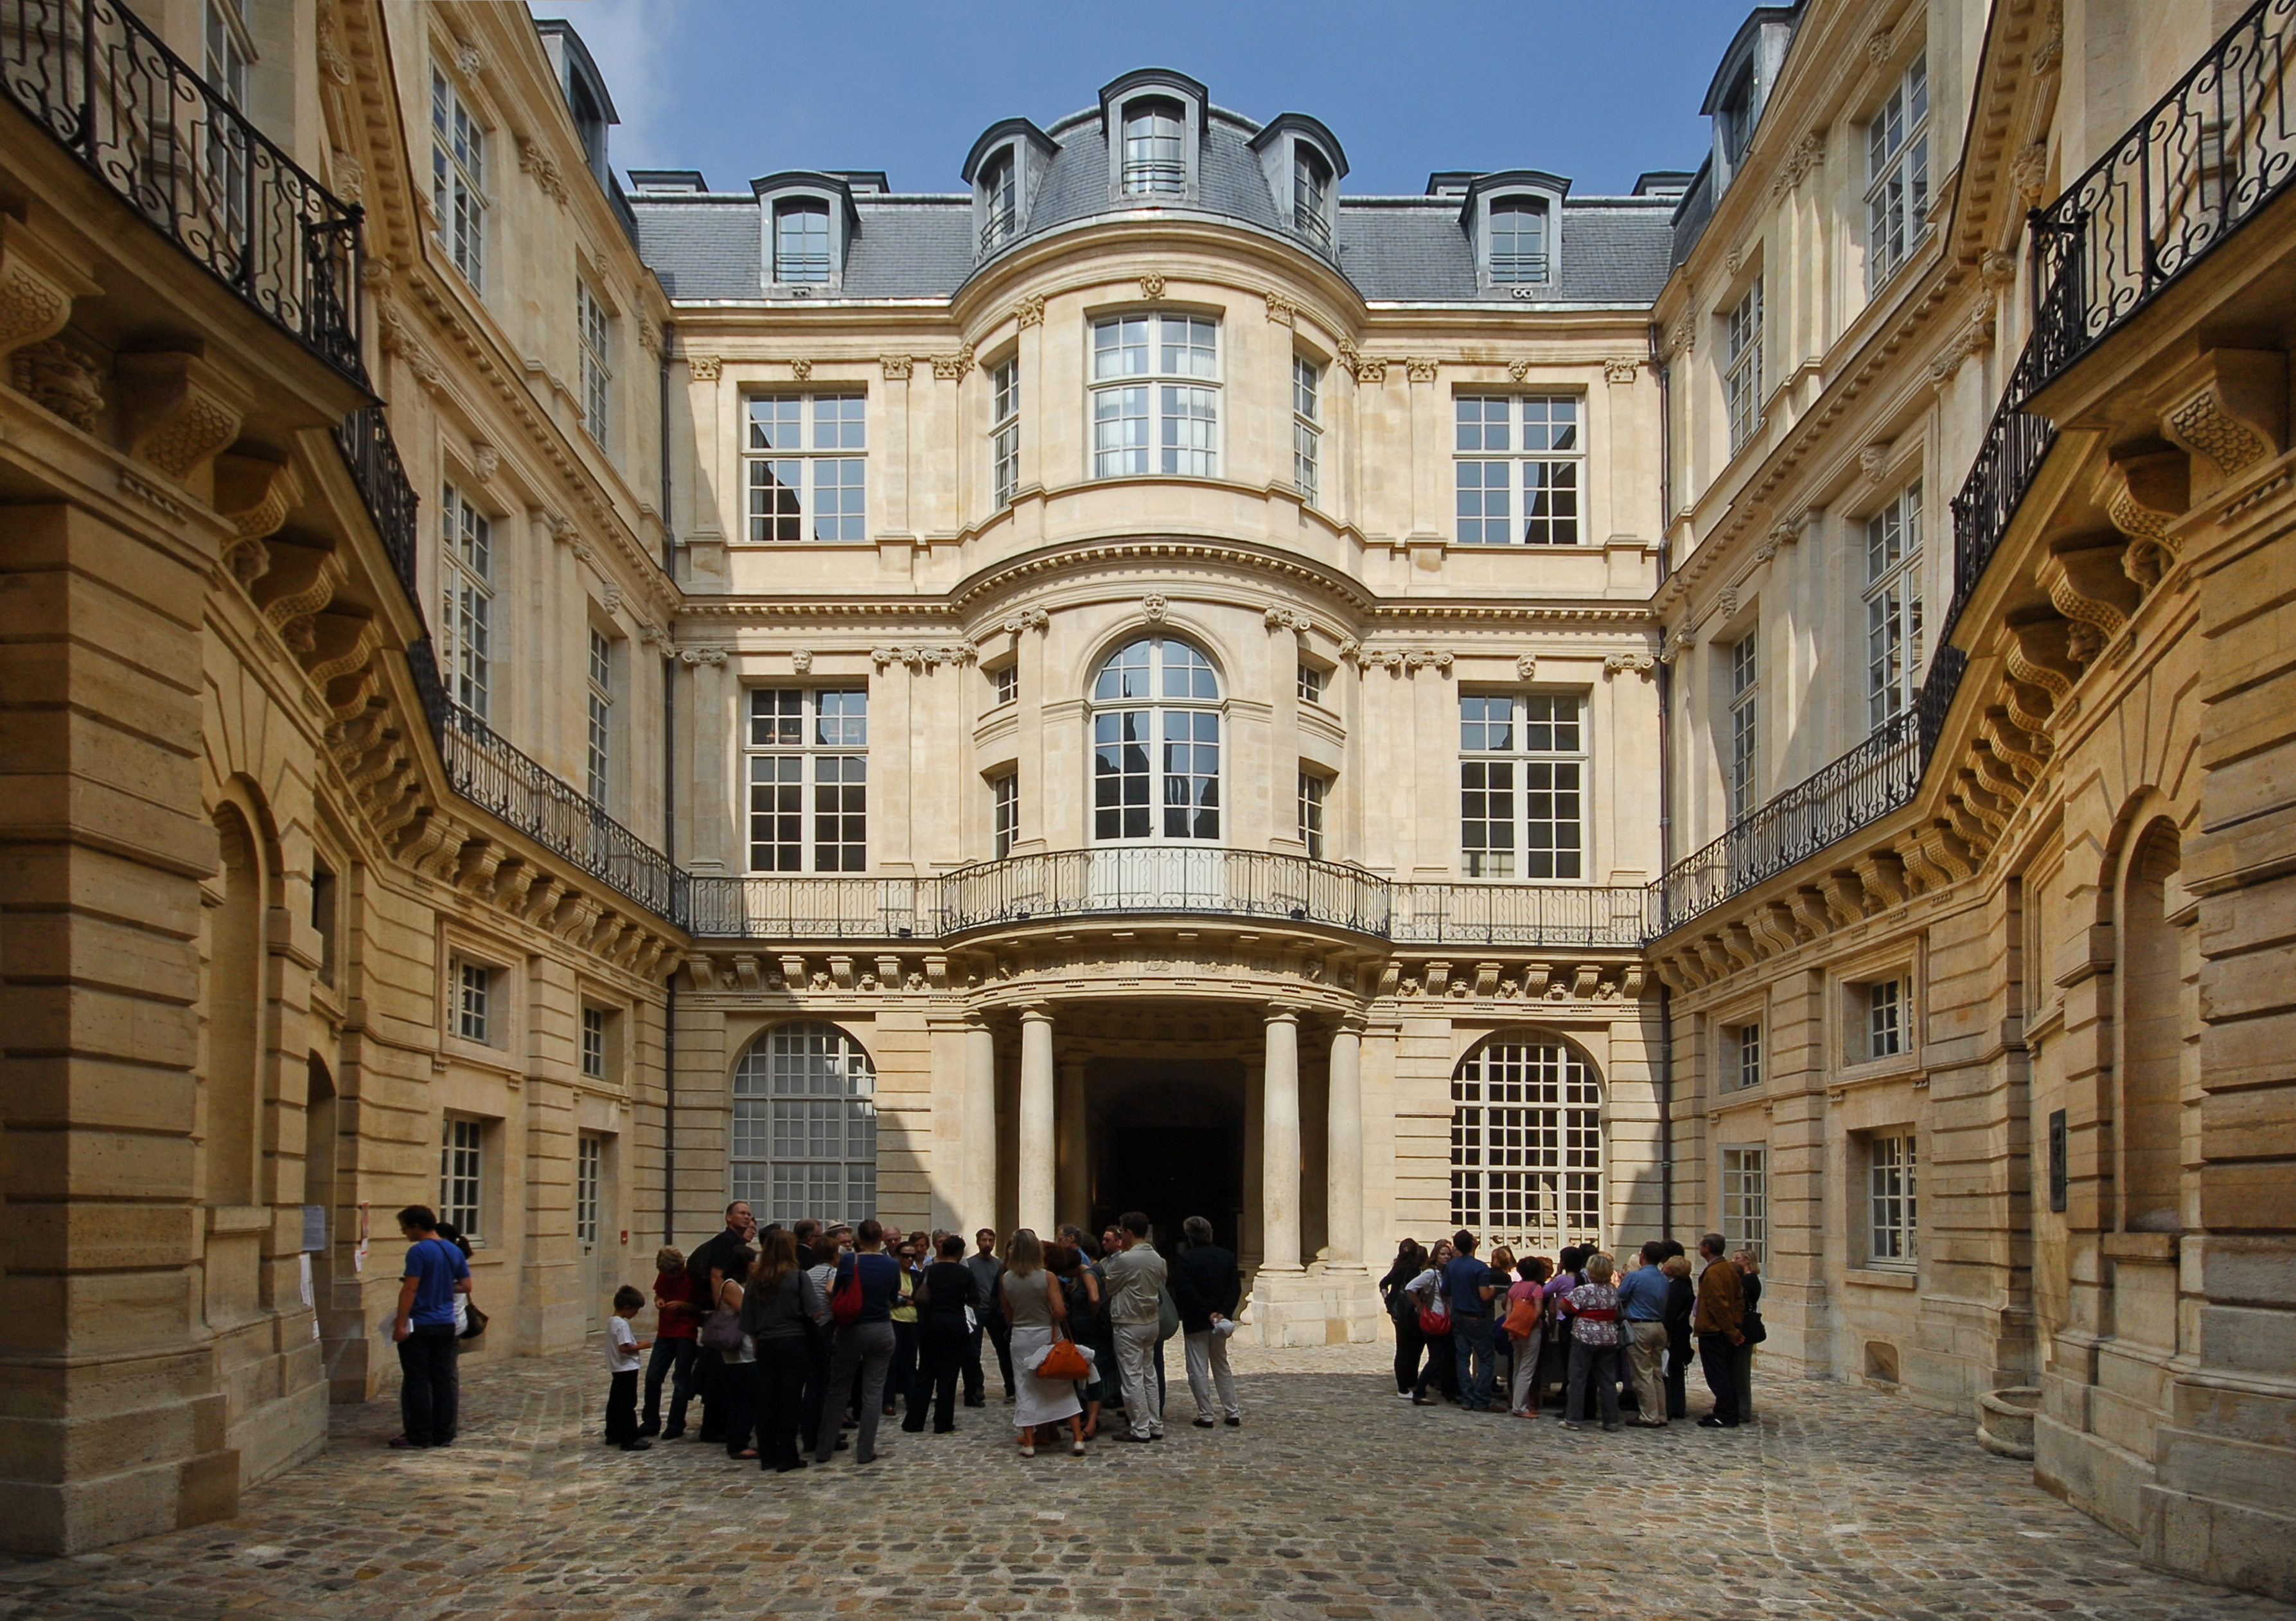 List of h´tels particuliers in Paris Wikimedia mons